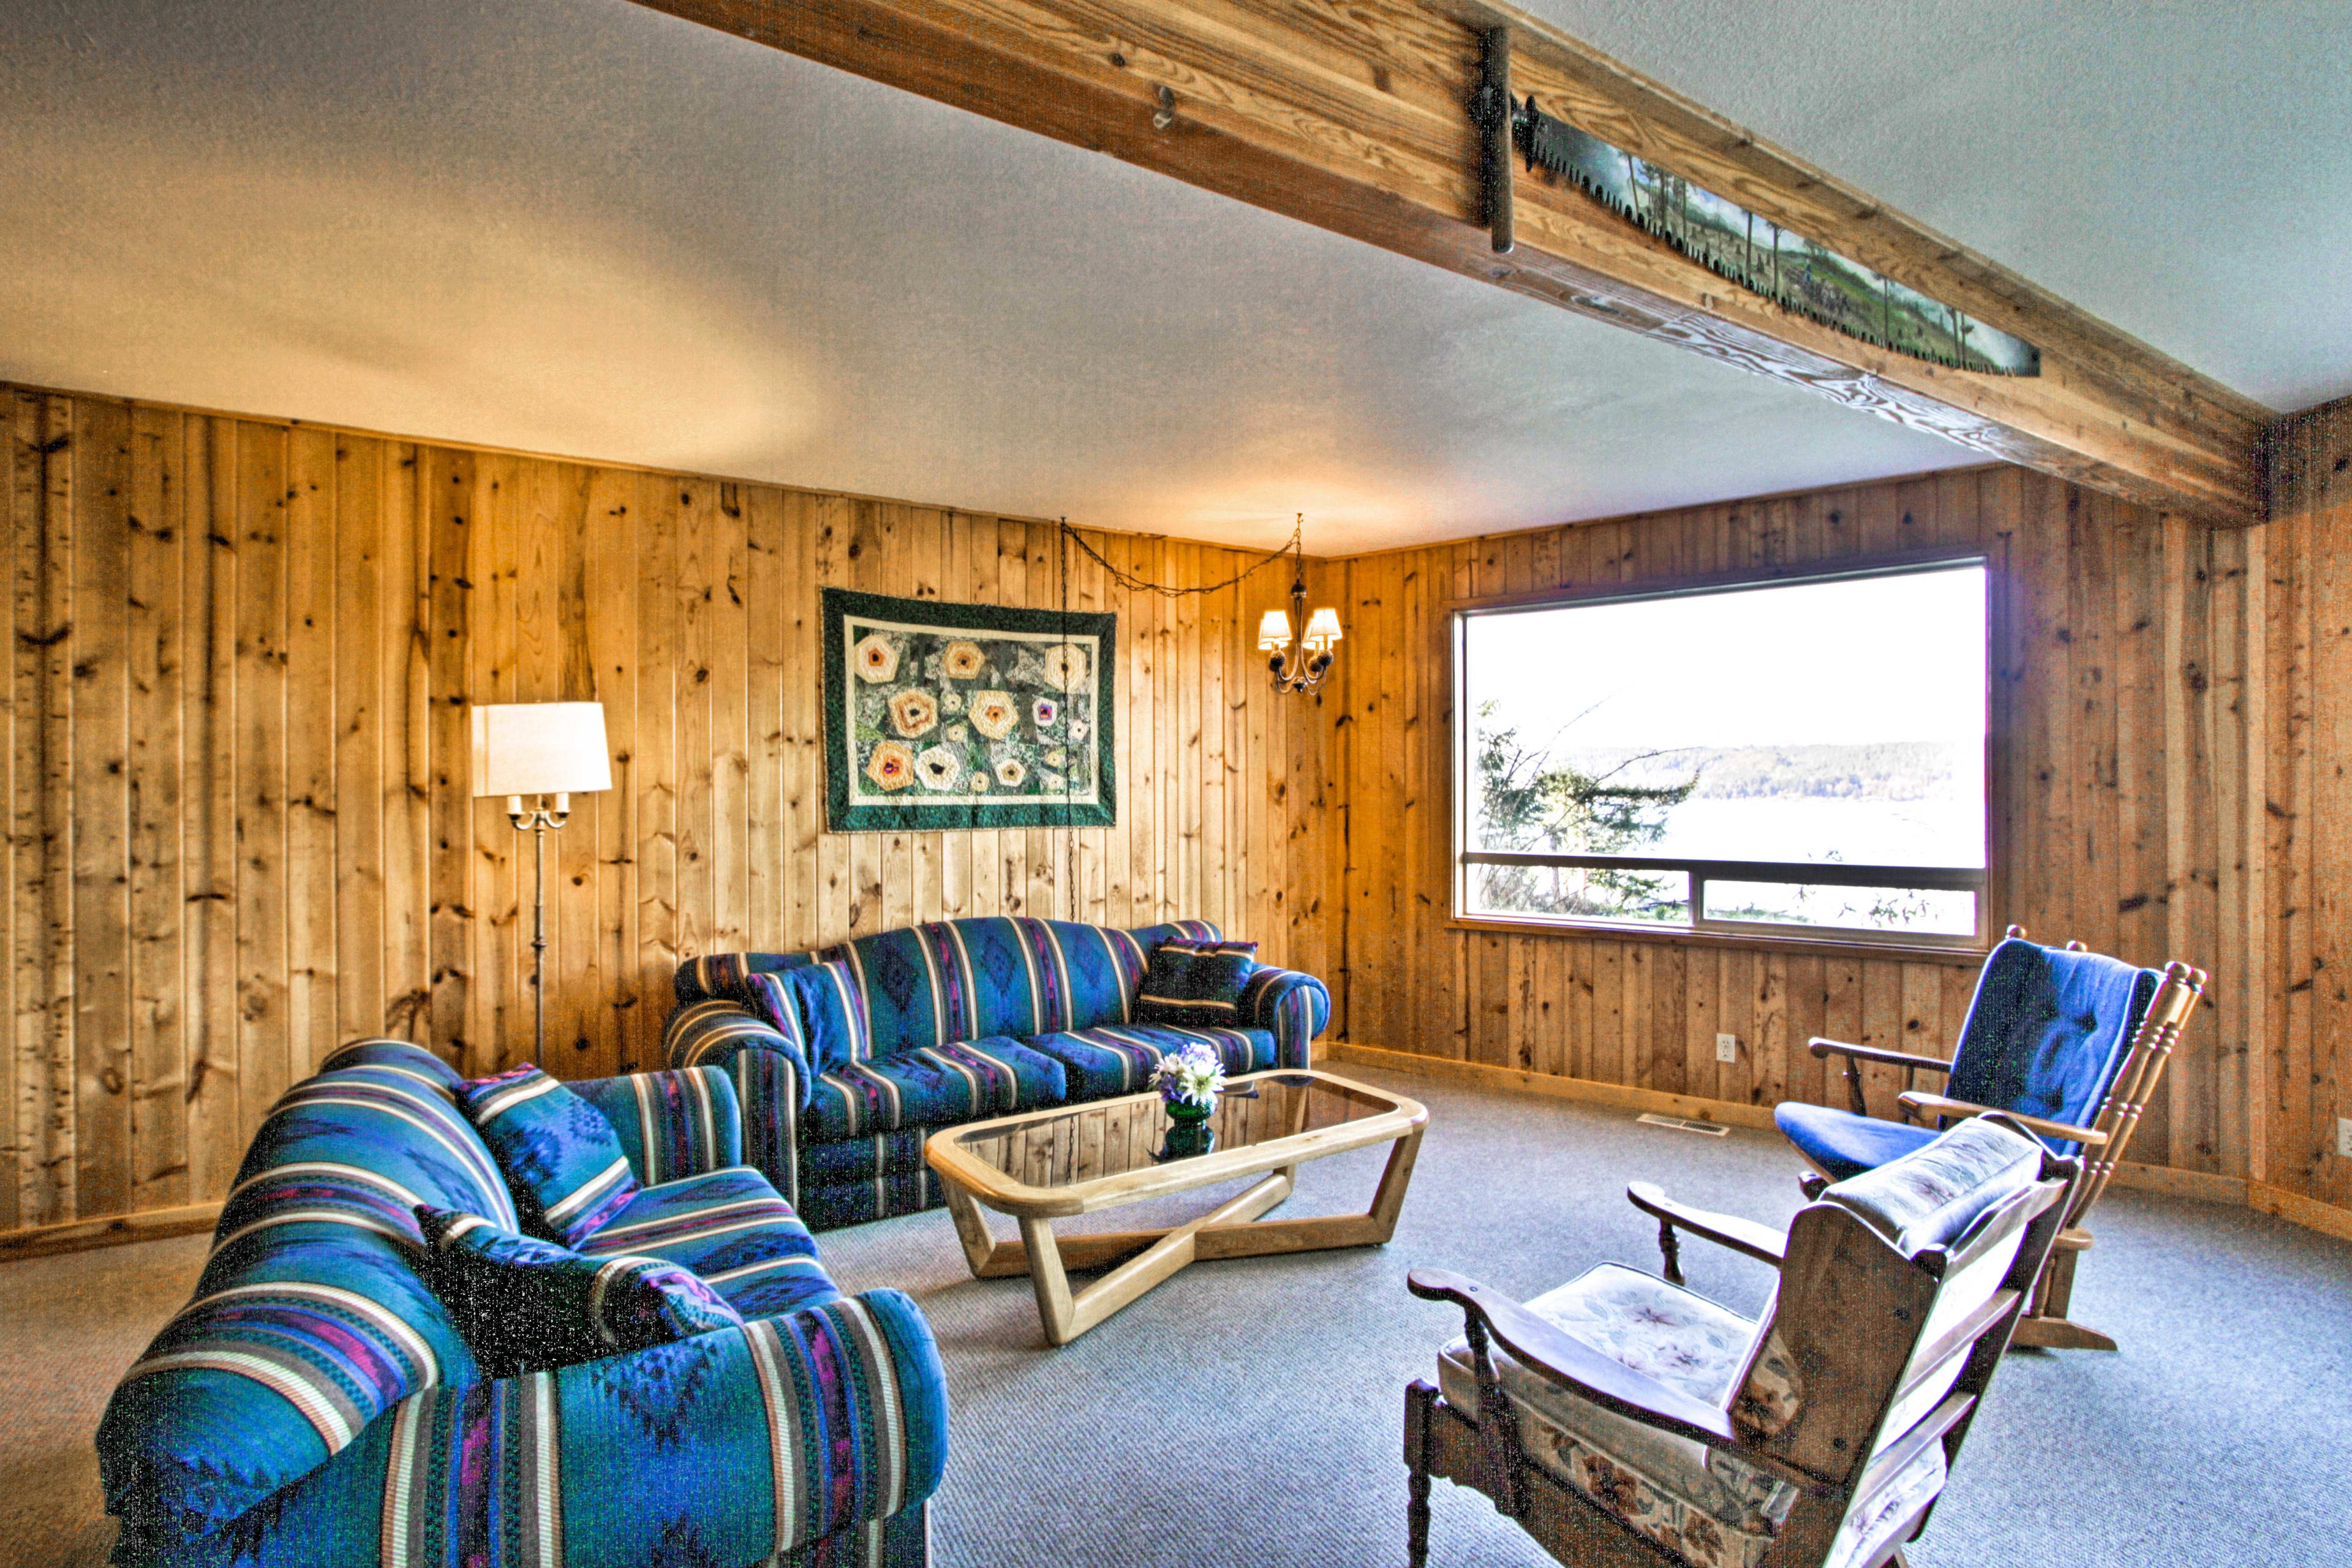 The downstairs living area features additional seating and picturesque views.